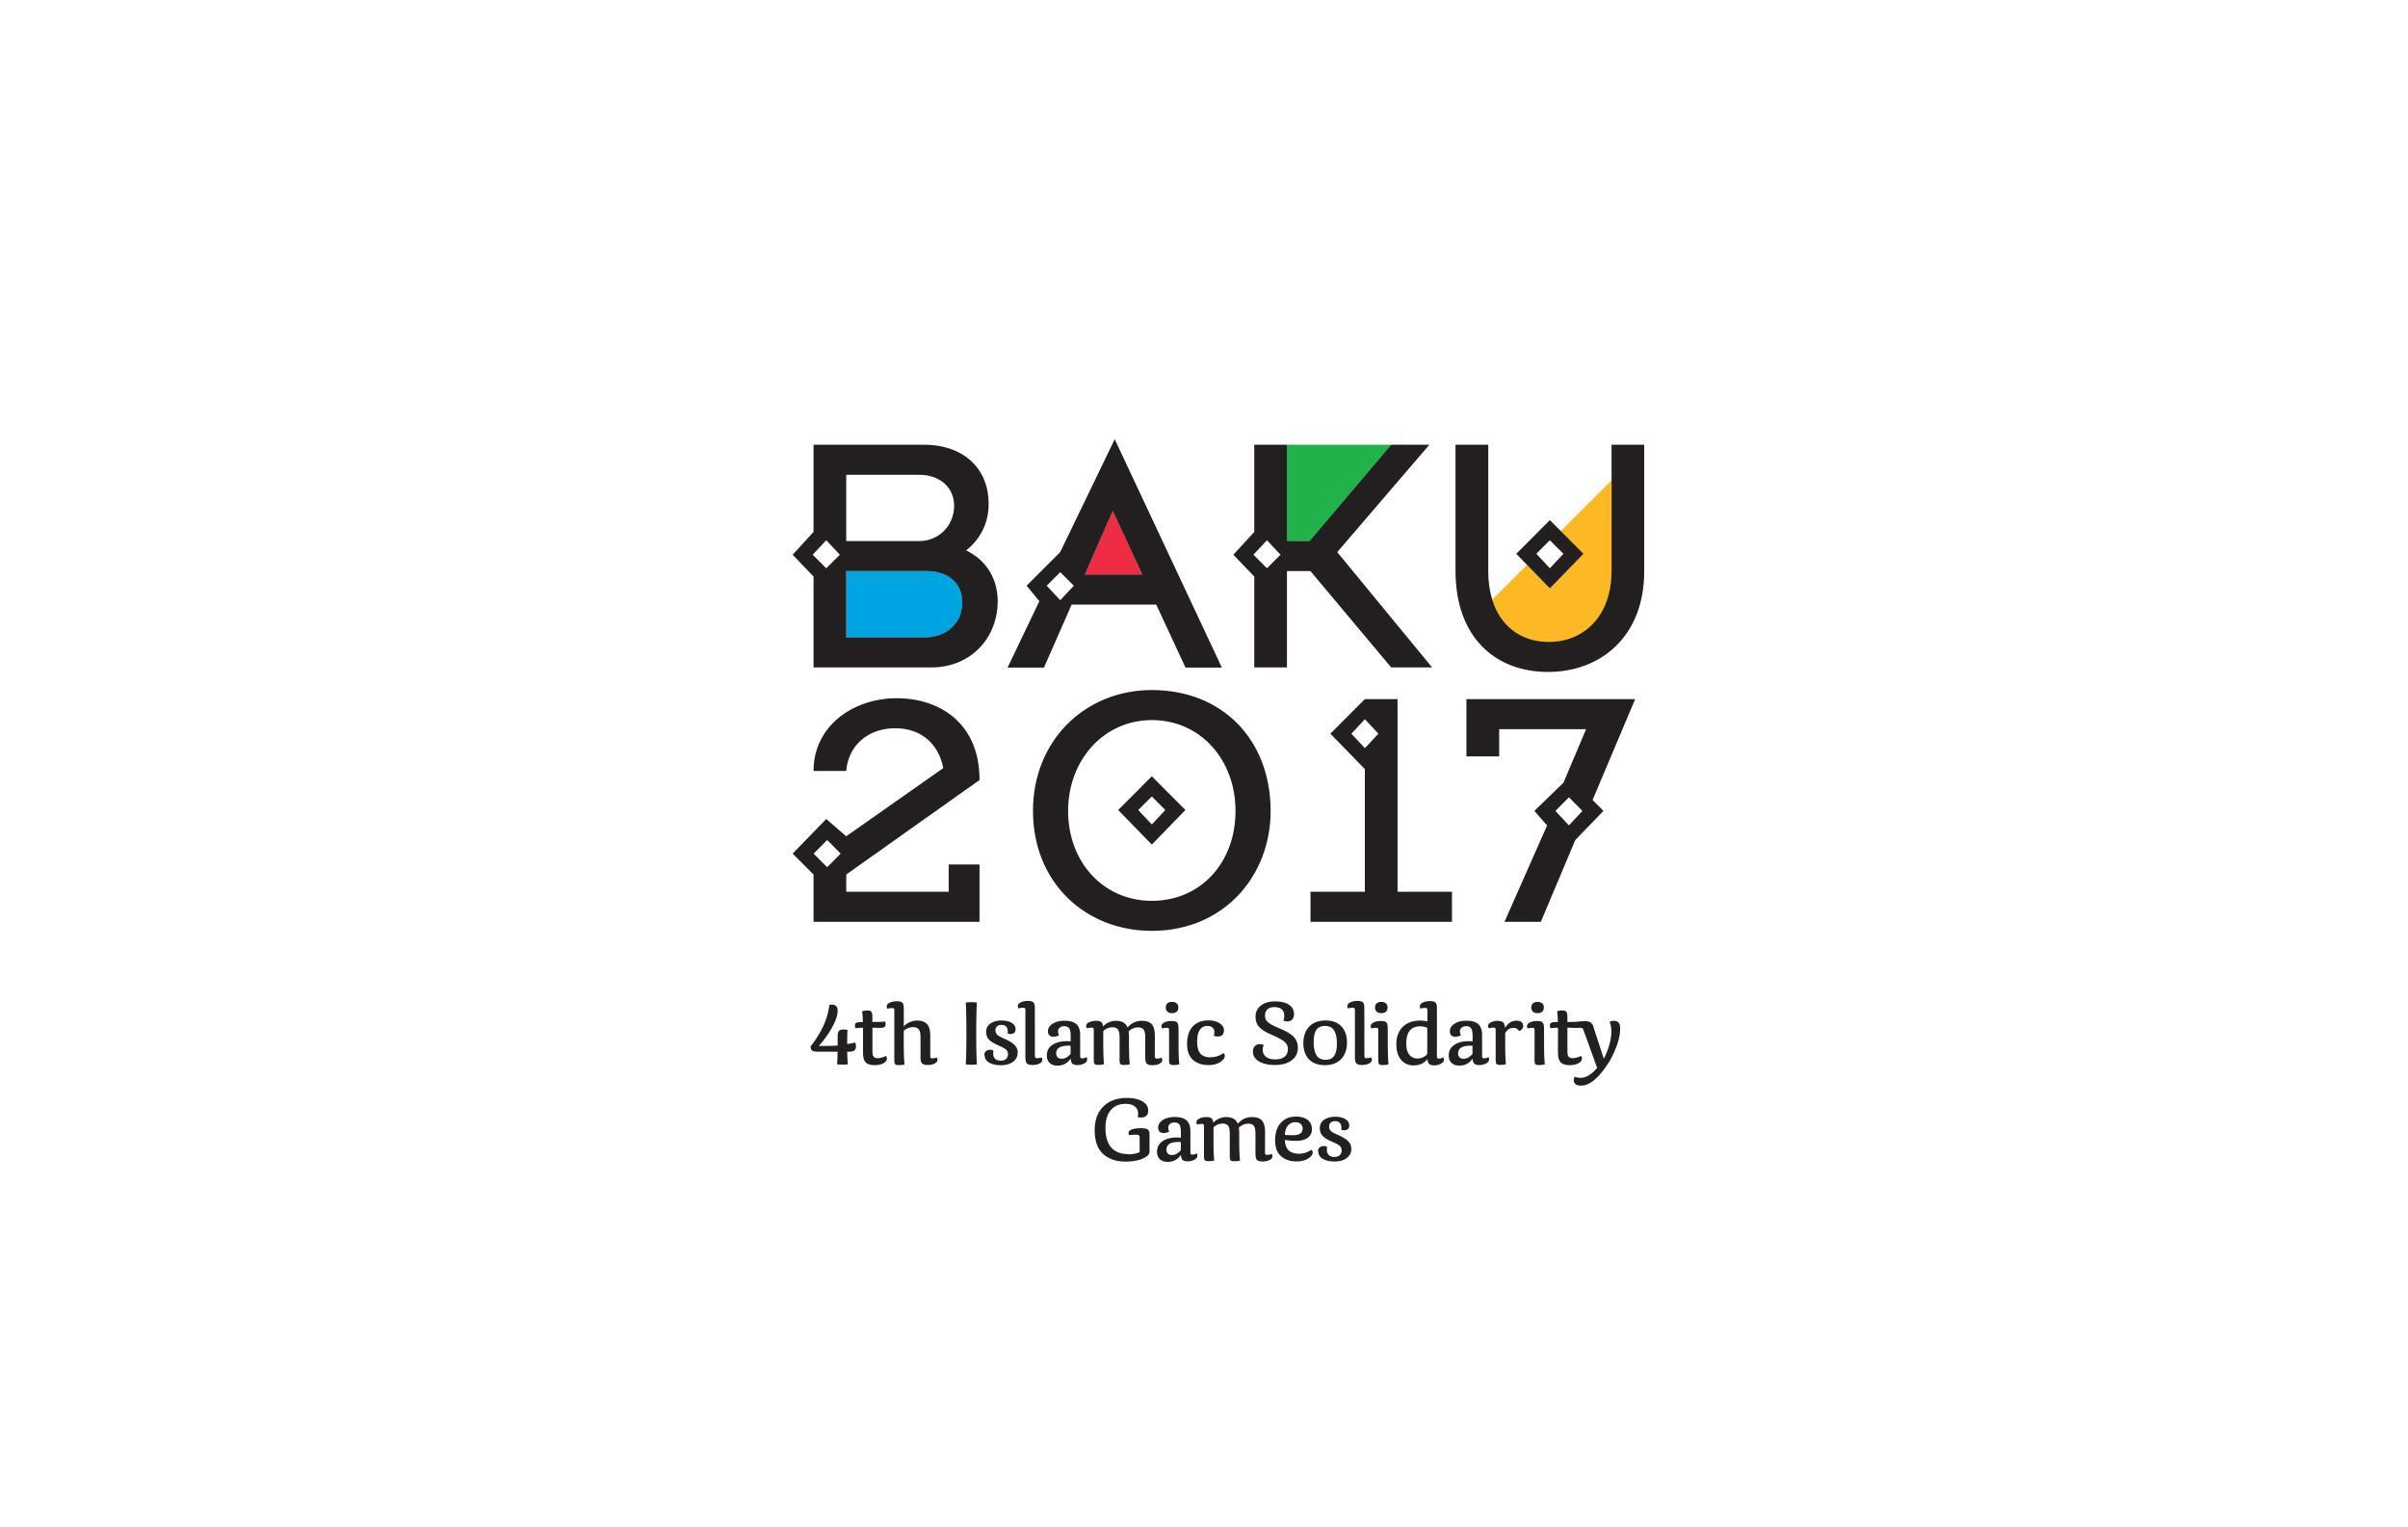 Funds allocated to IV Islamic Solidarity Games revealed